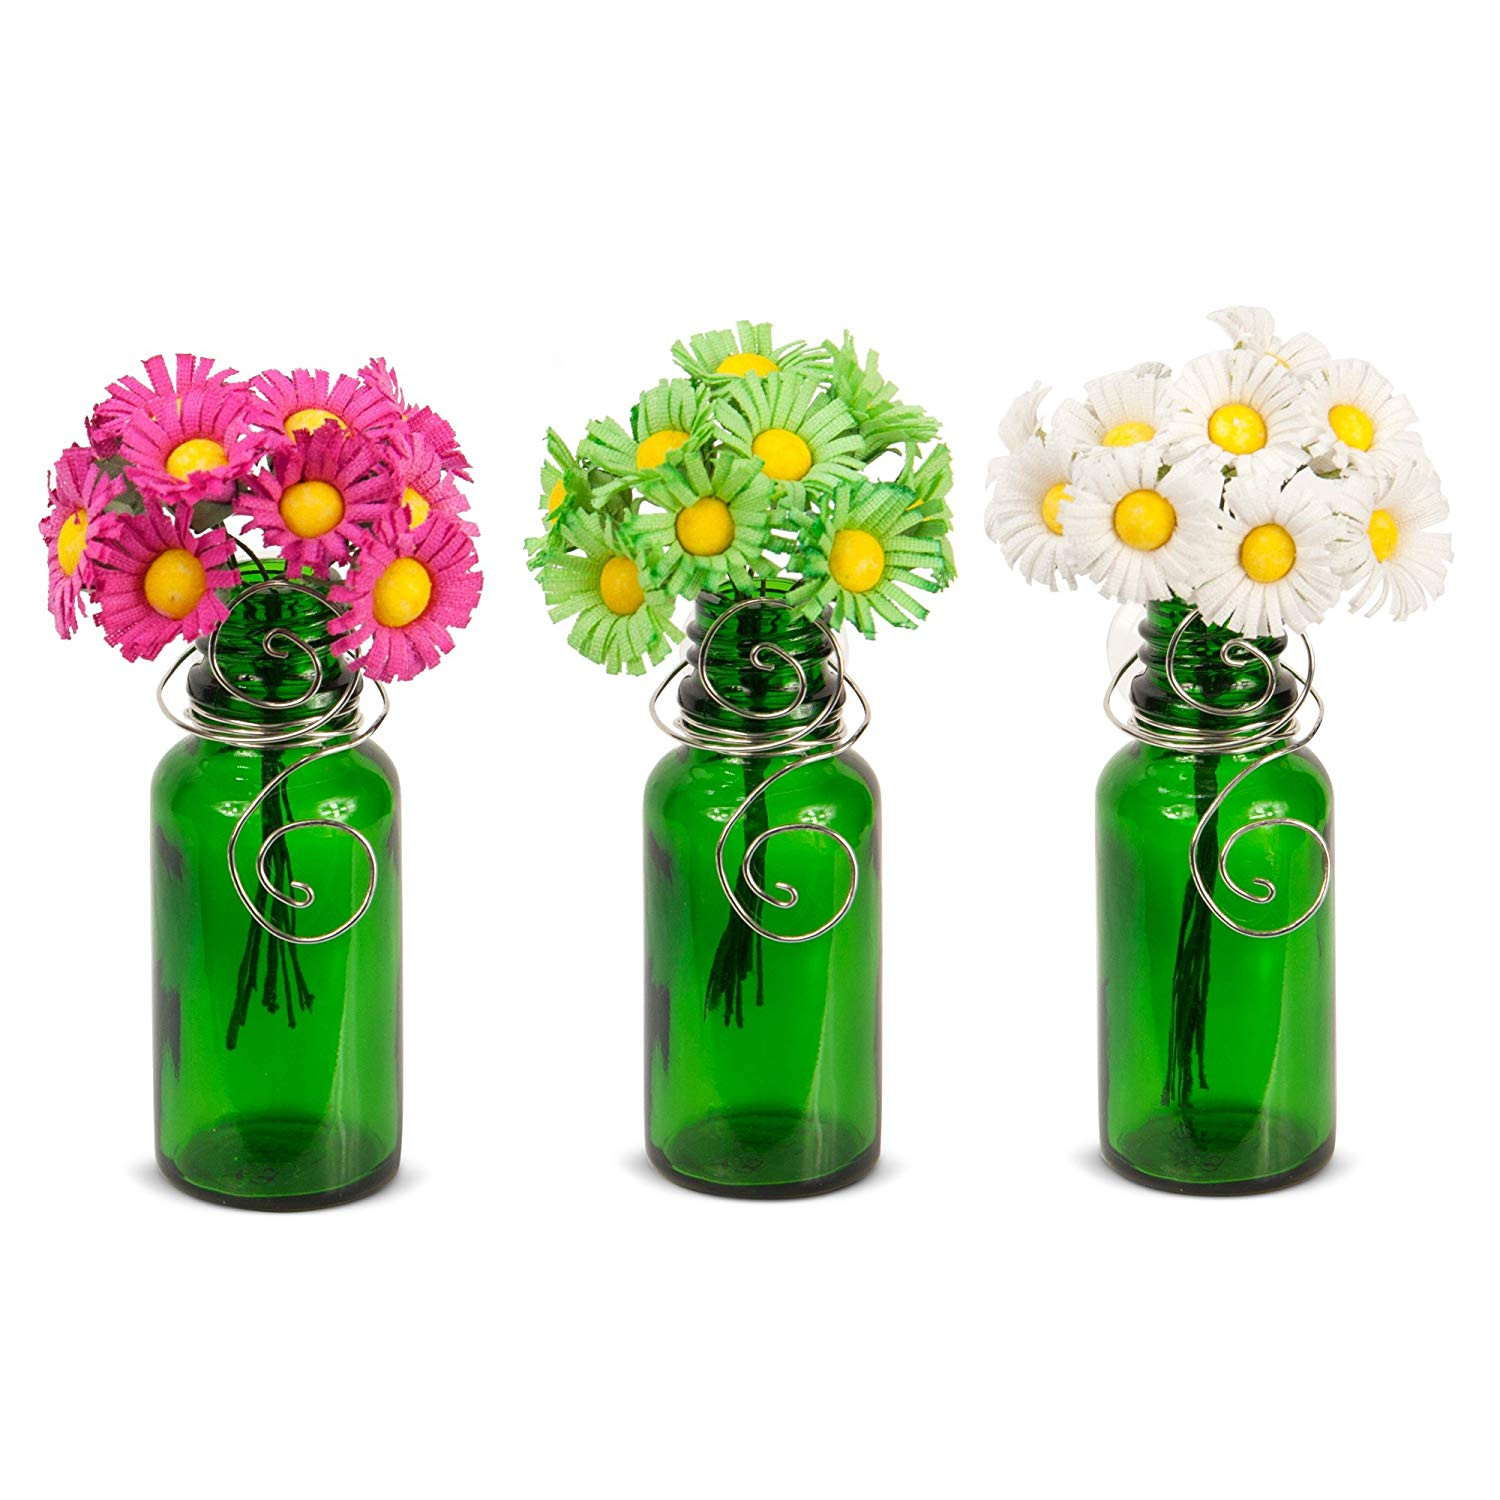 stay in the vase flower holder of amazon com vazzini mini vase bouquet suction cup bud bottle pertaining to amazon com vazzini mini vase bouquet suction cup bud bottle holder with flowers decorative for window mirrors tile wedding party favor get well